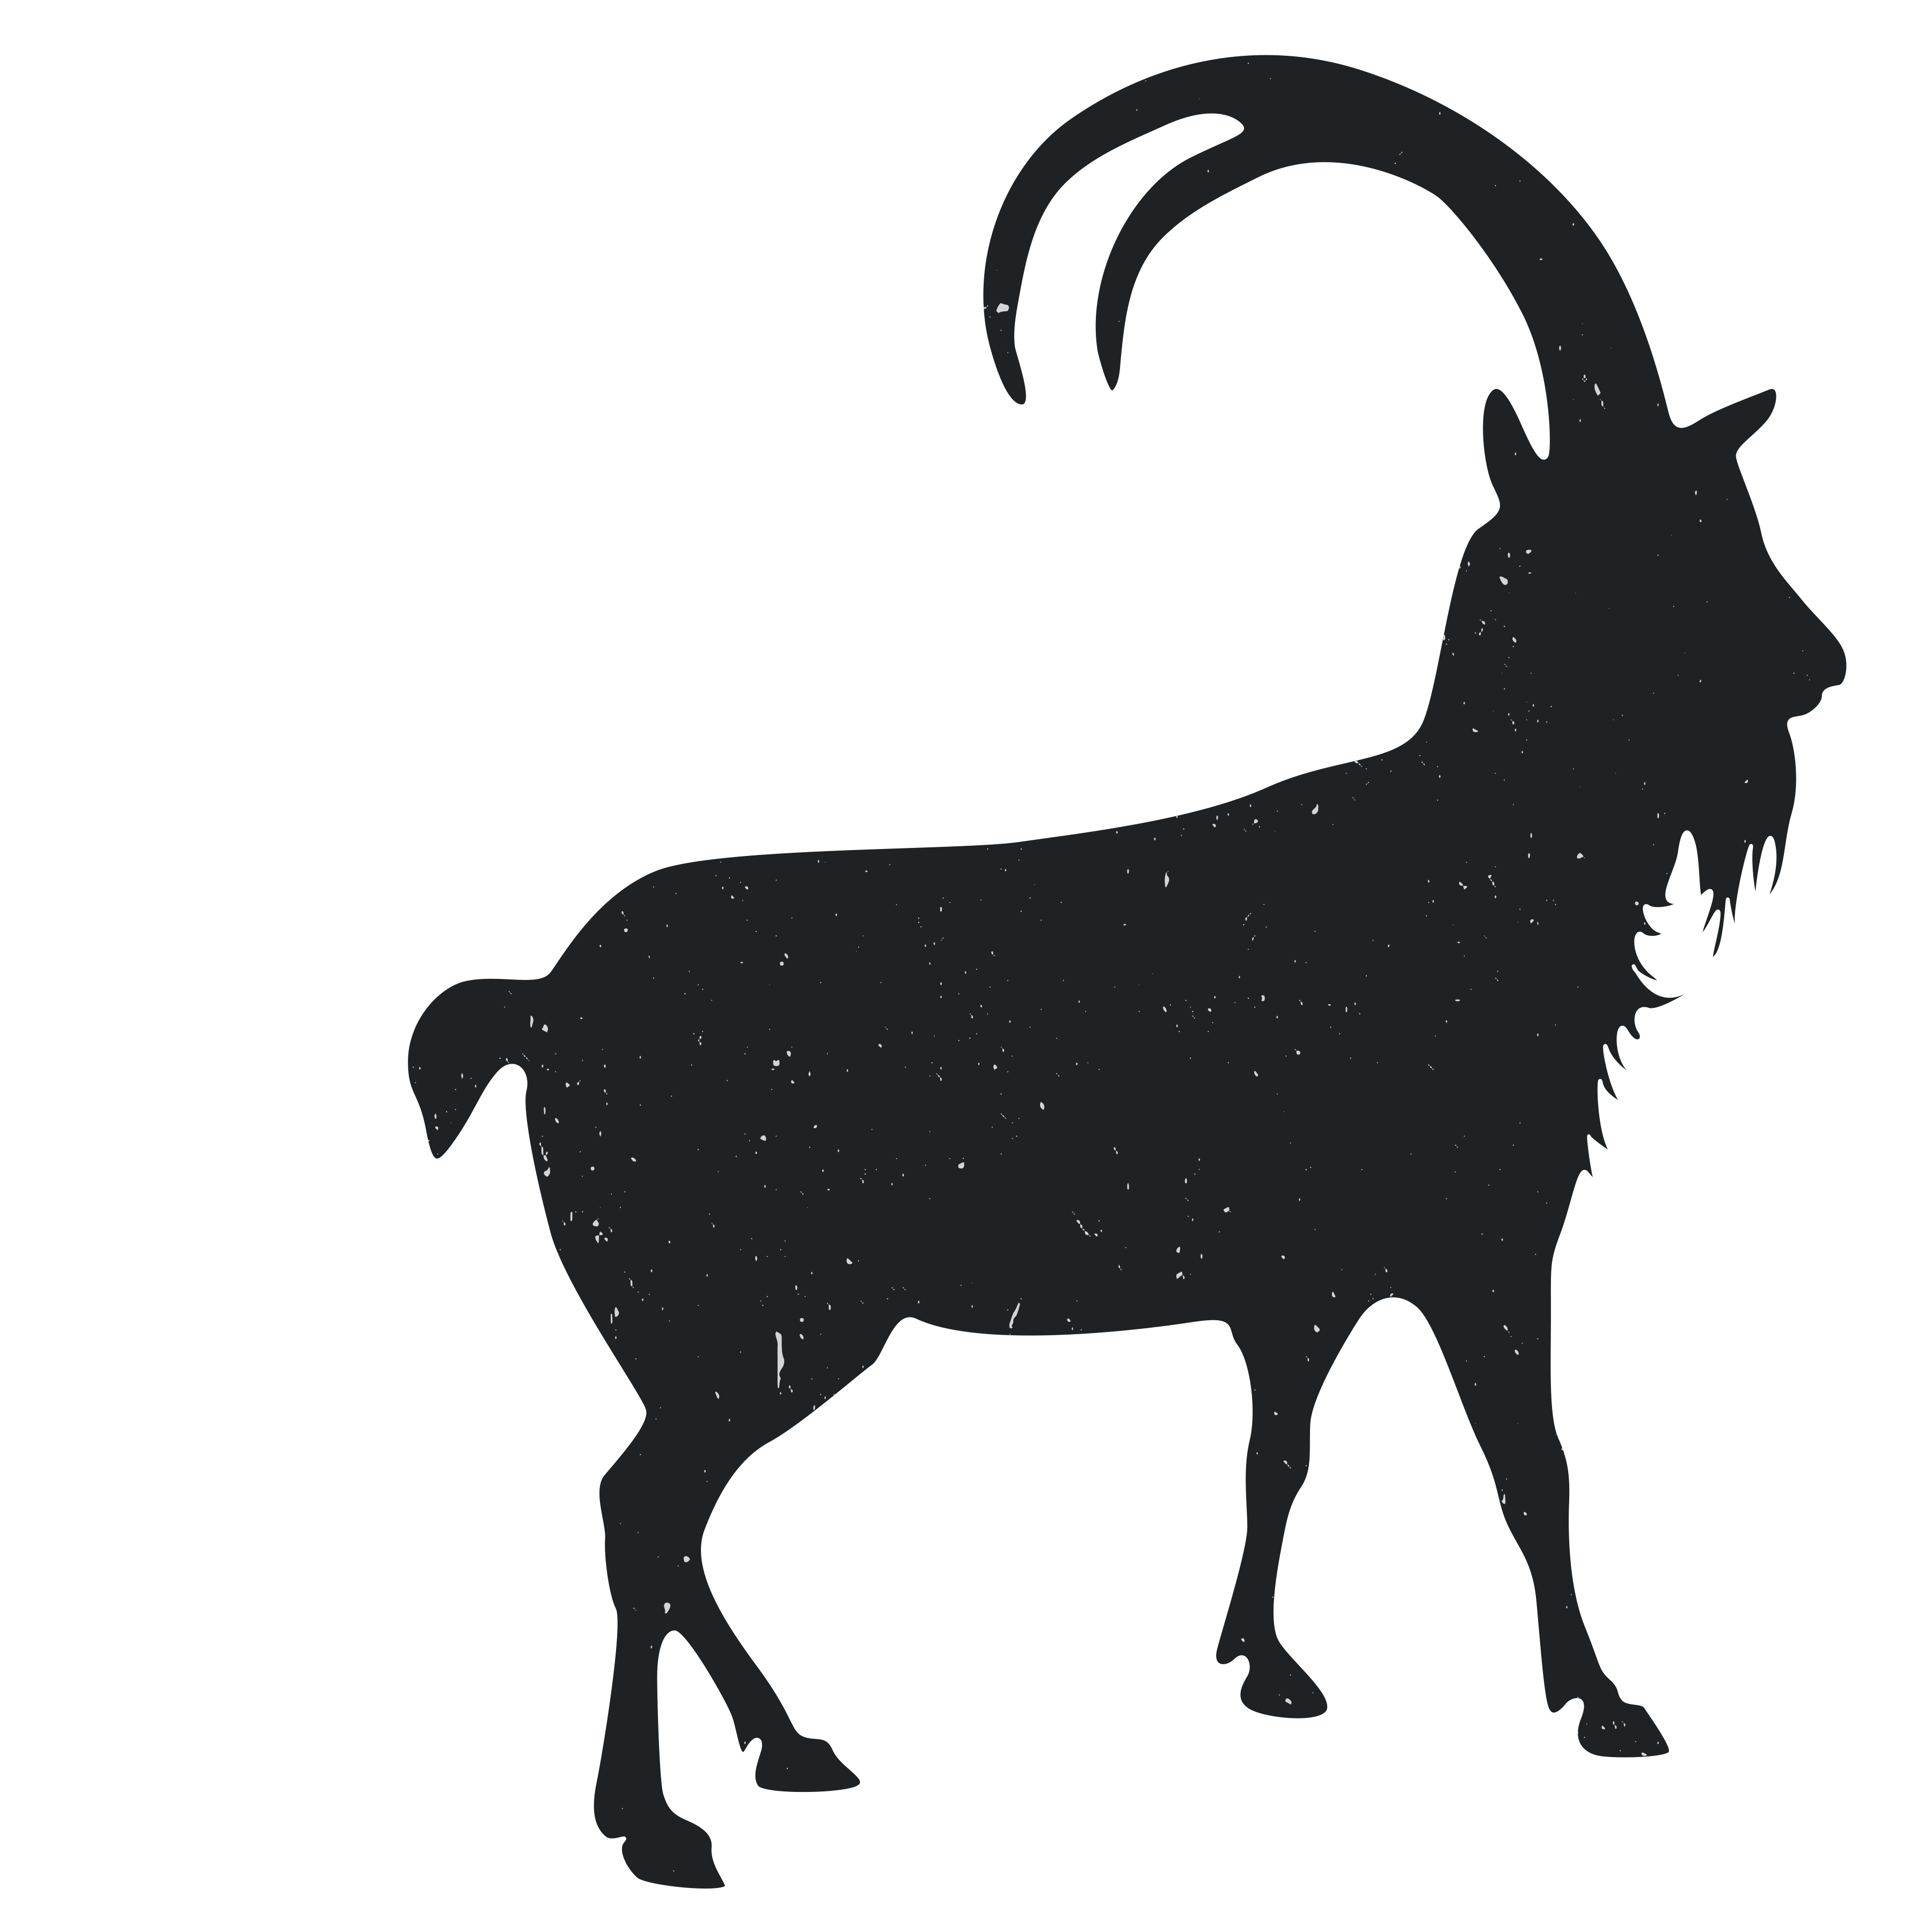 Goat silhouette png. Black and white animal